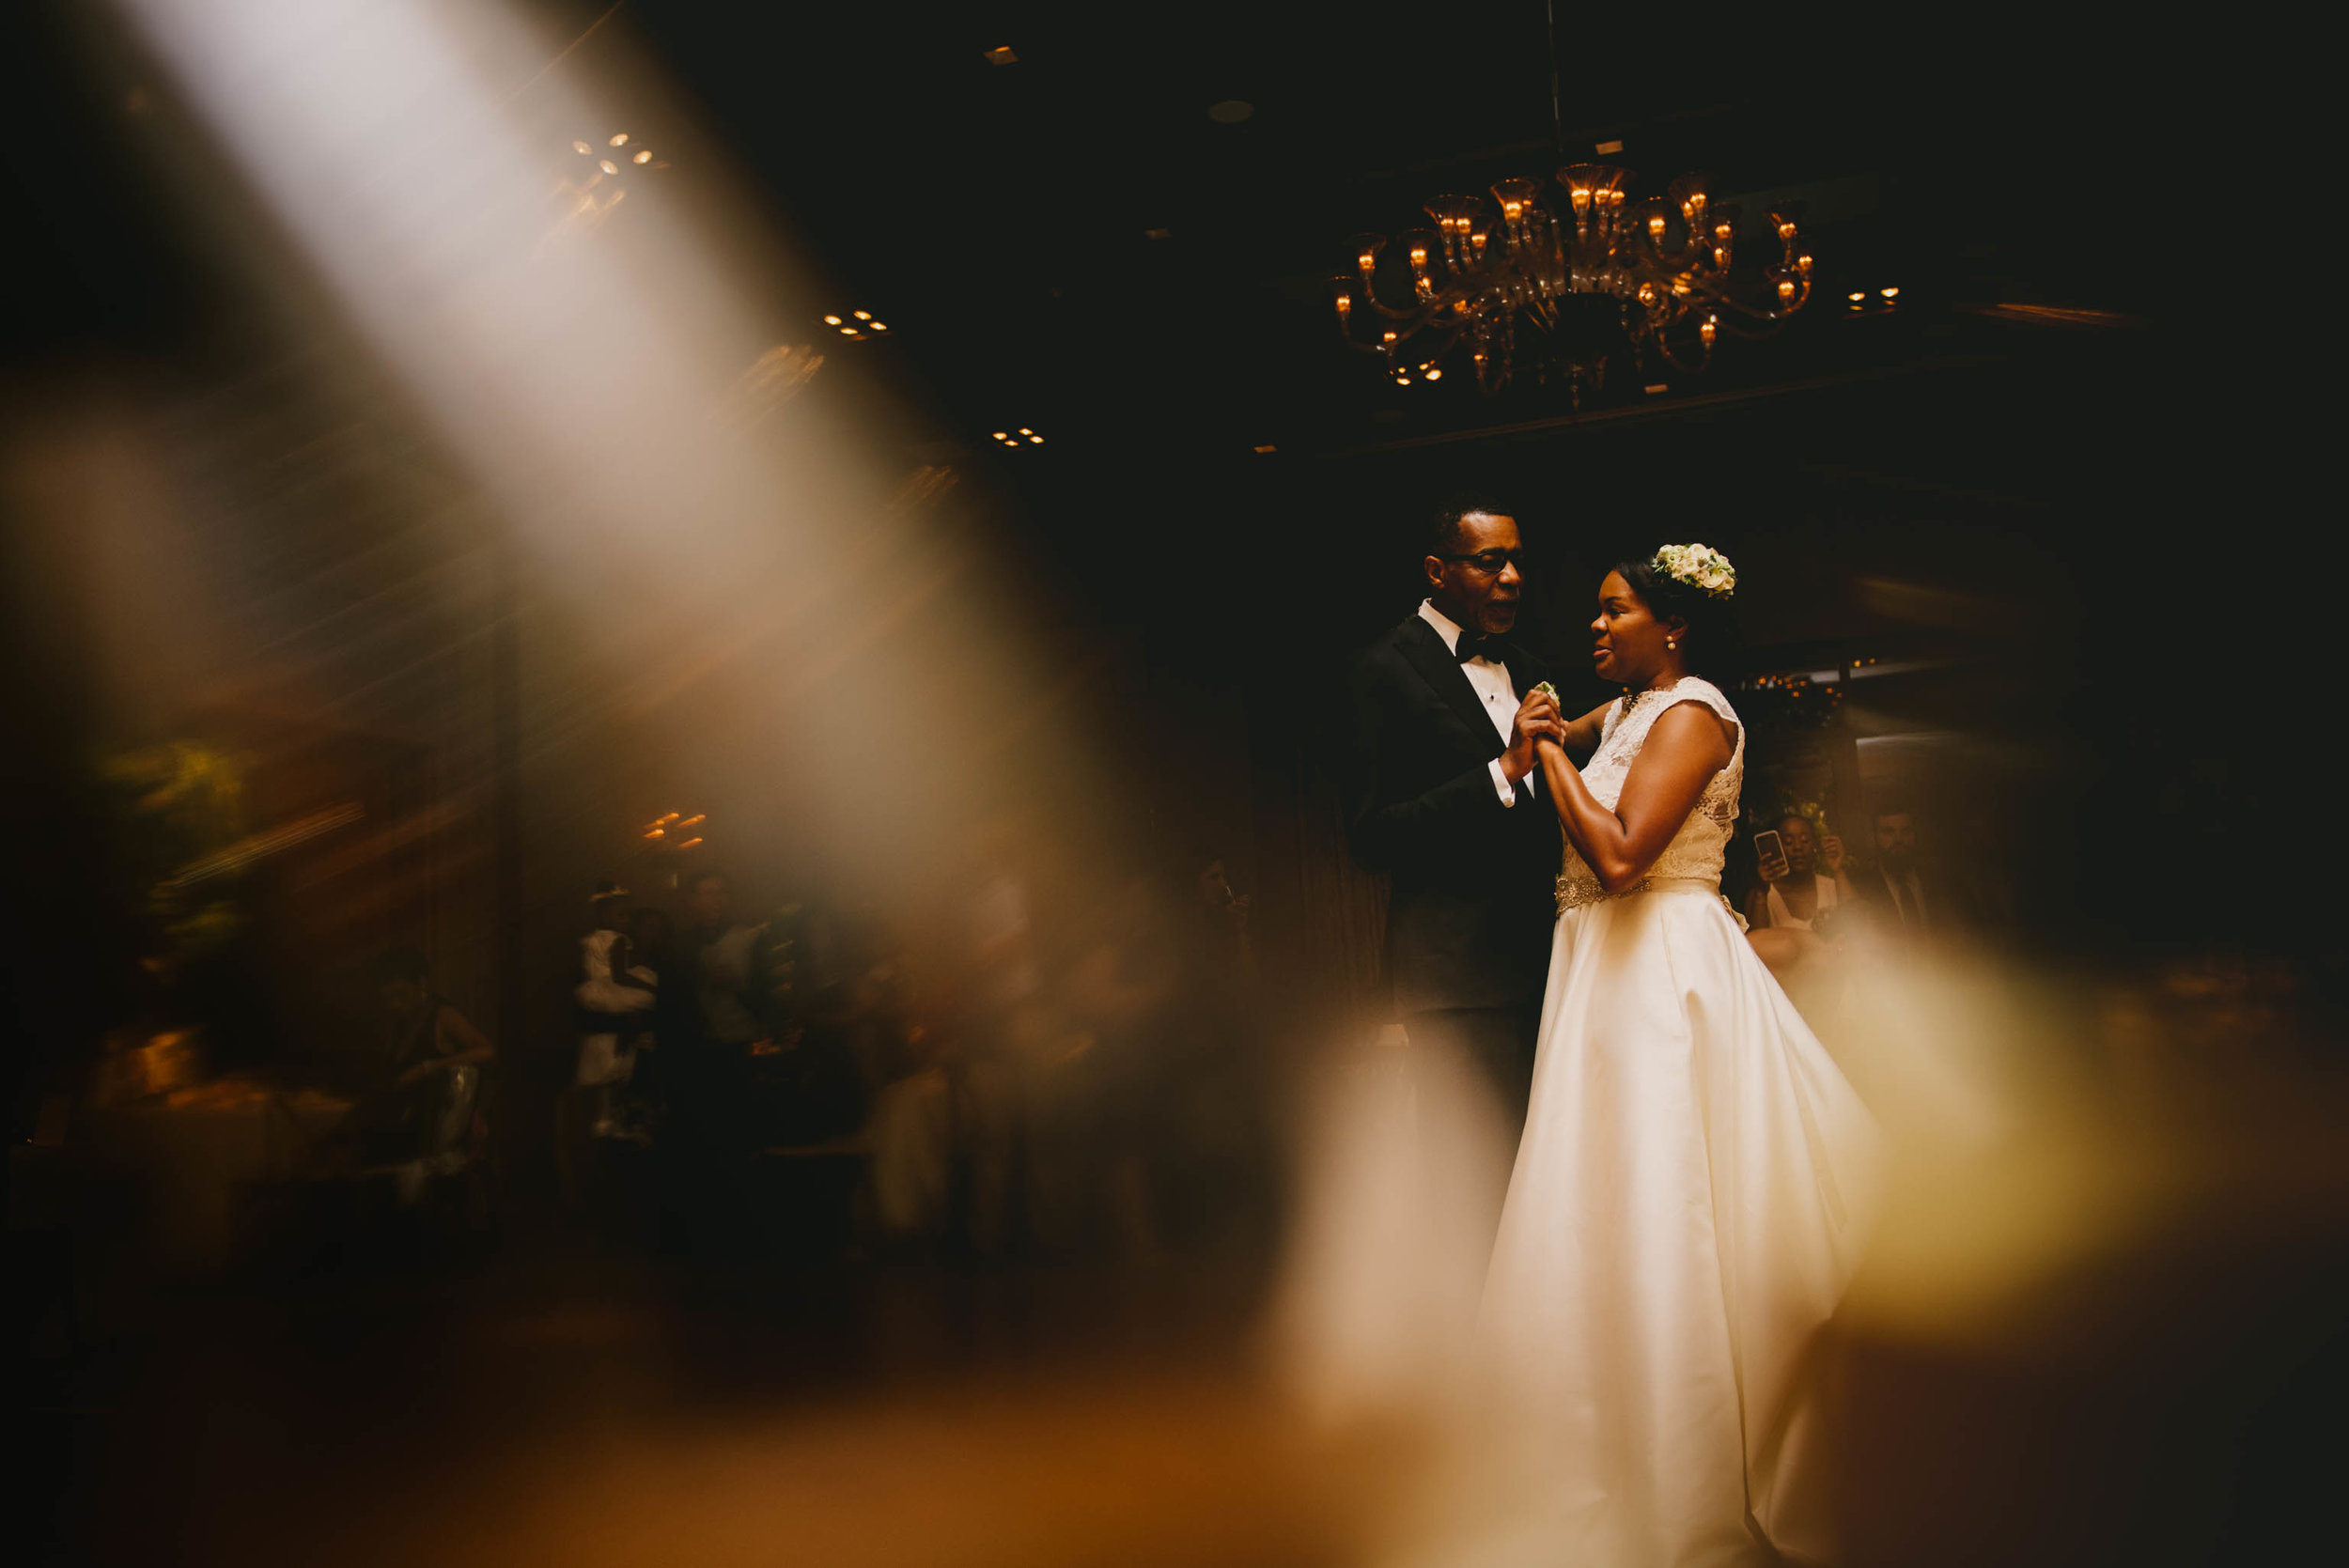 The bride and her father share a dance at this elegant wedding at the Umstead Hotel and Spa in Cary, NC